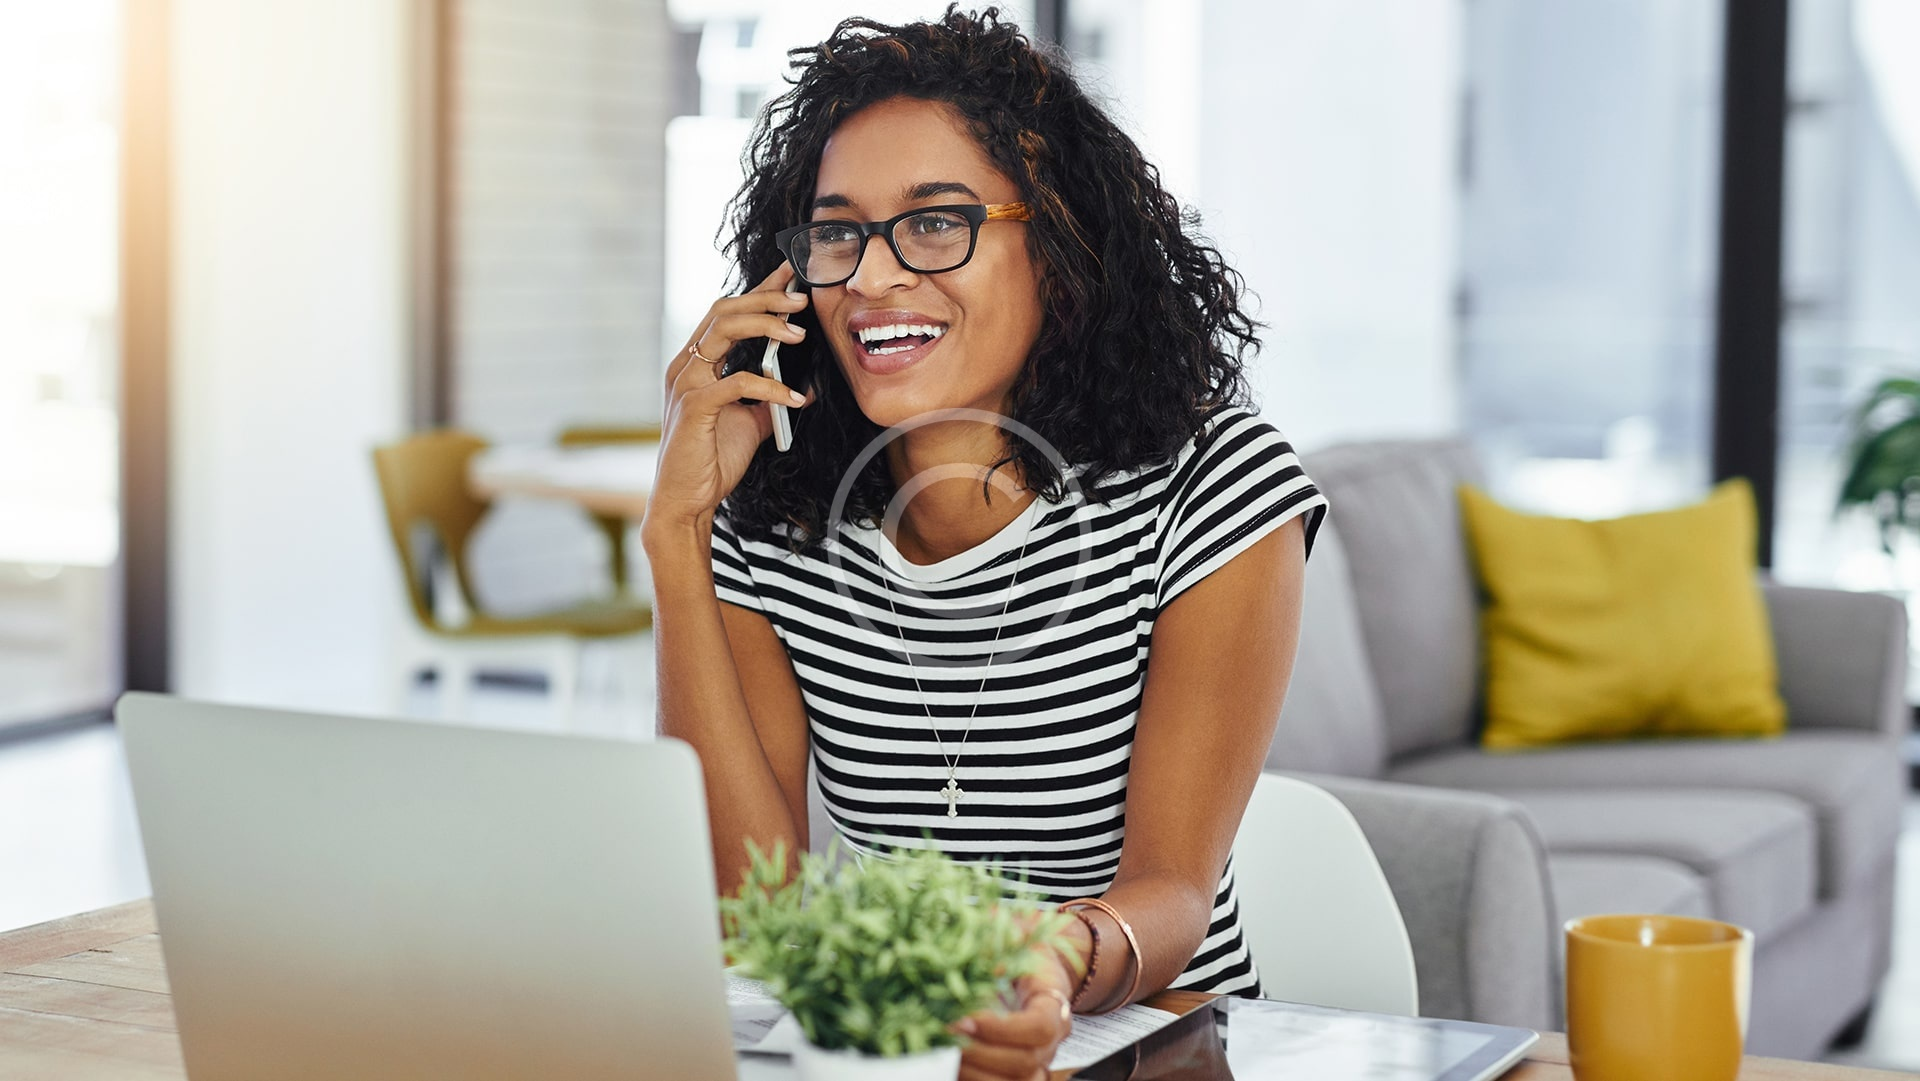 Want to Work Remotely? Here are Some Tips